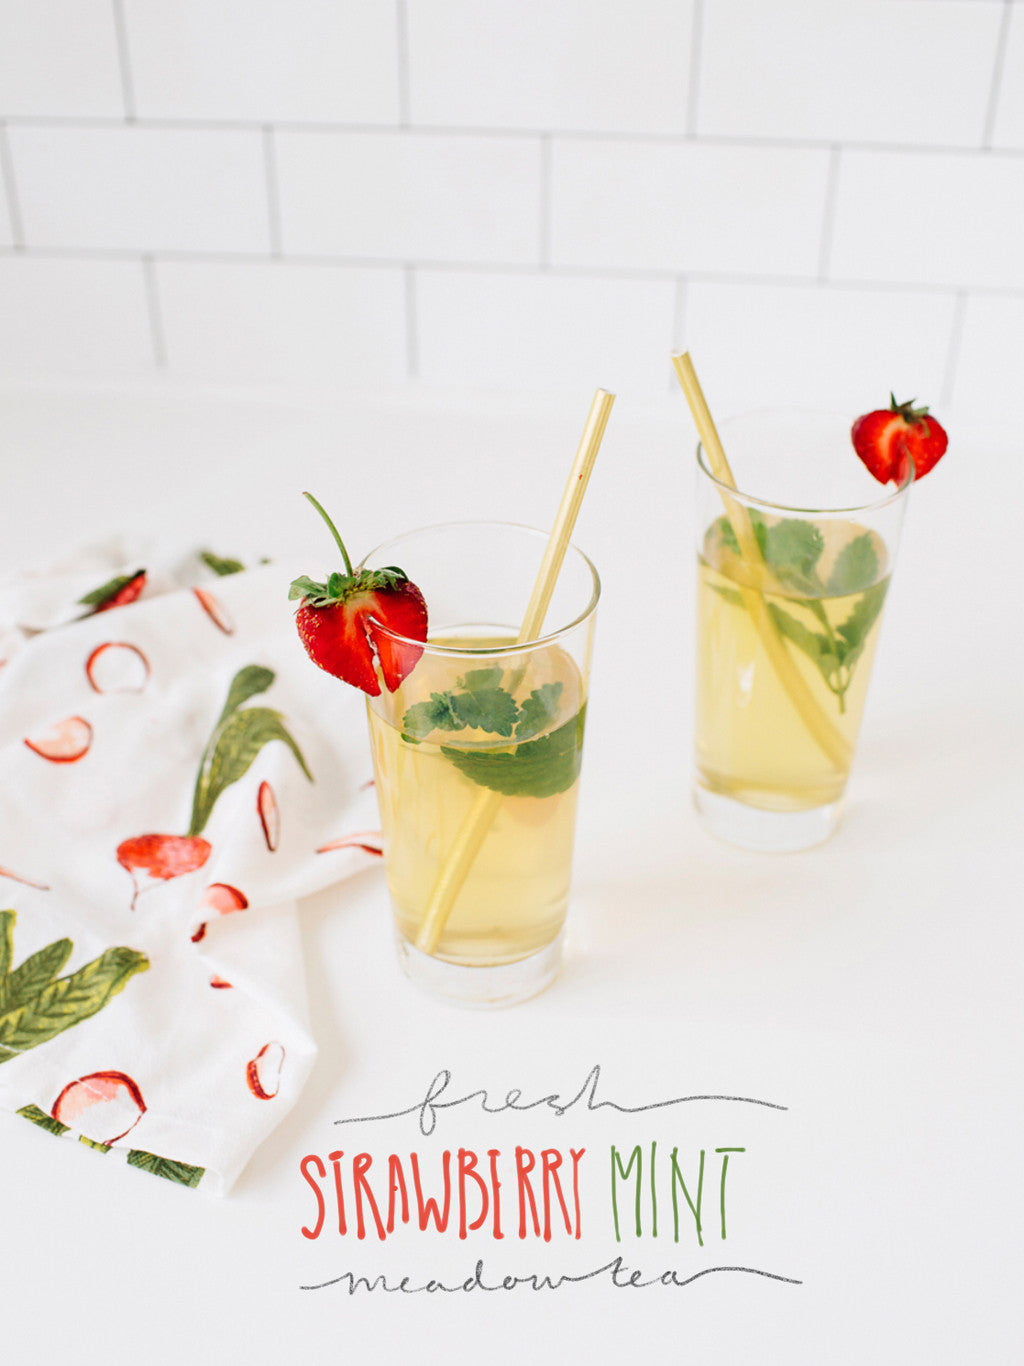 Fresh Strawberry Mint Meadow Tea